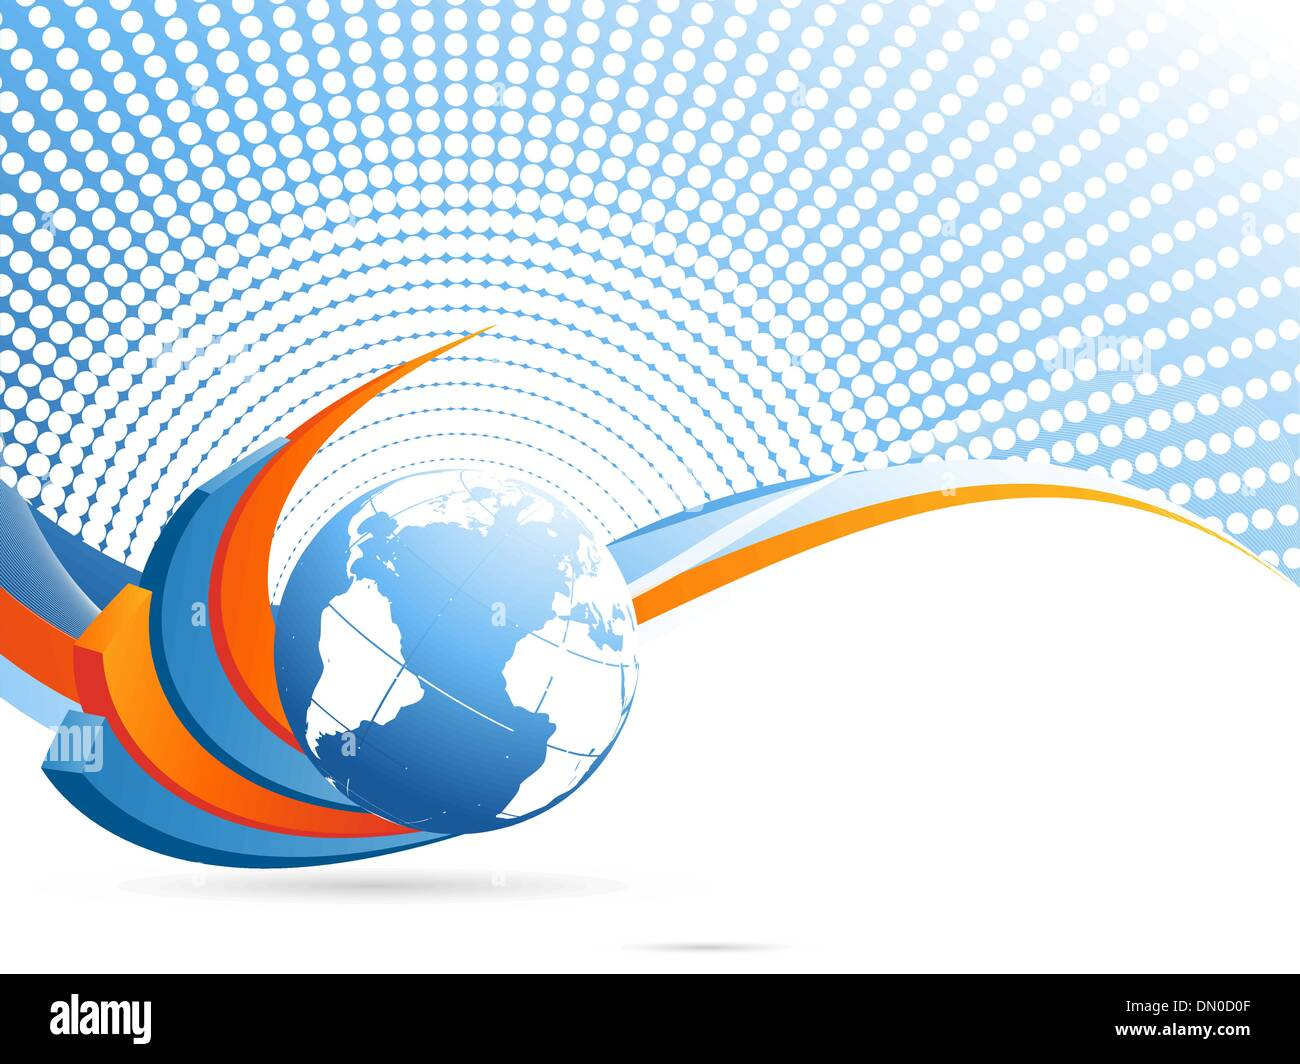 statistic vector backdrop - Stock Image